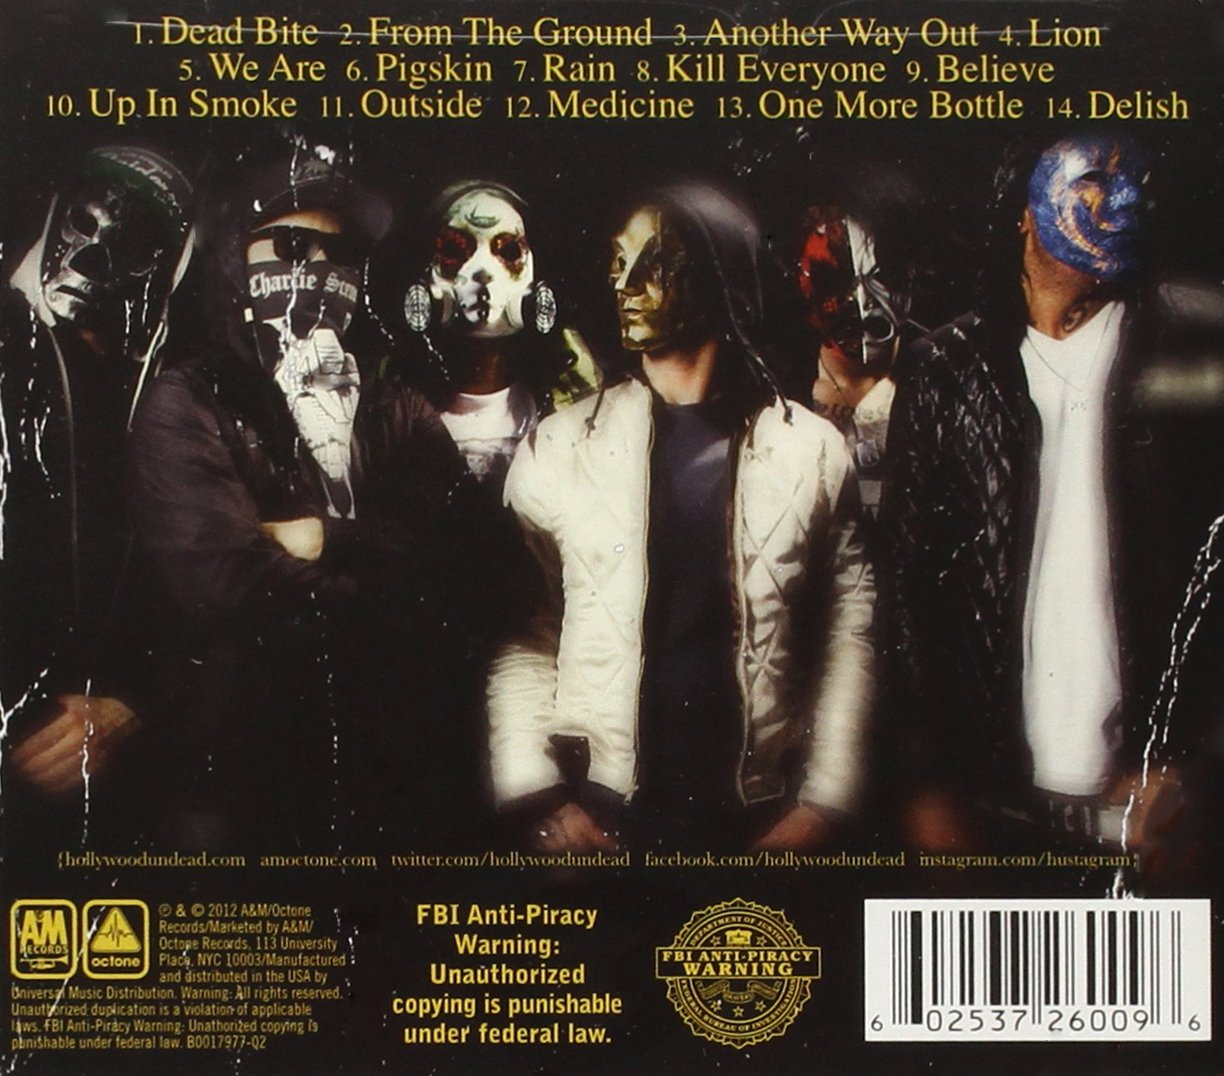 Notes From The Underground: Hollywood Undead : Amazon.es: Música